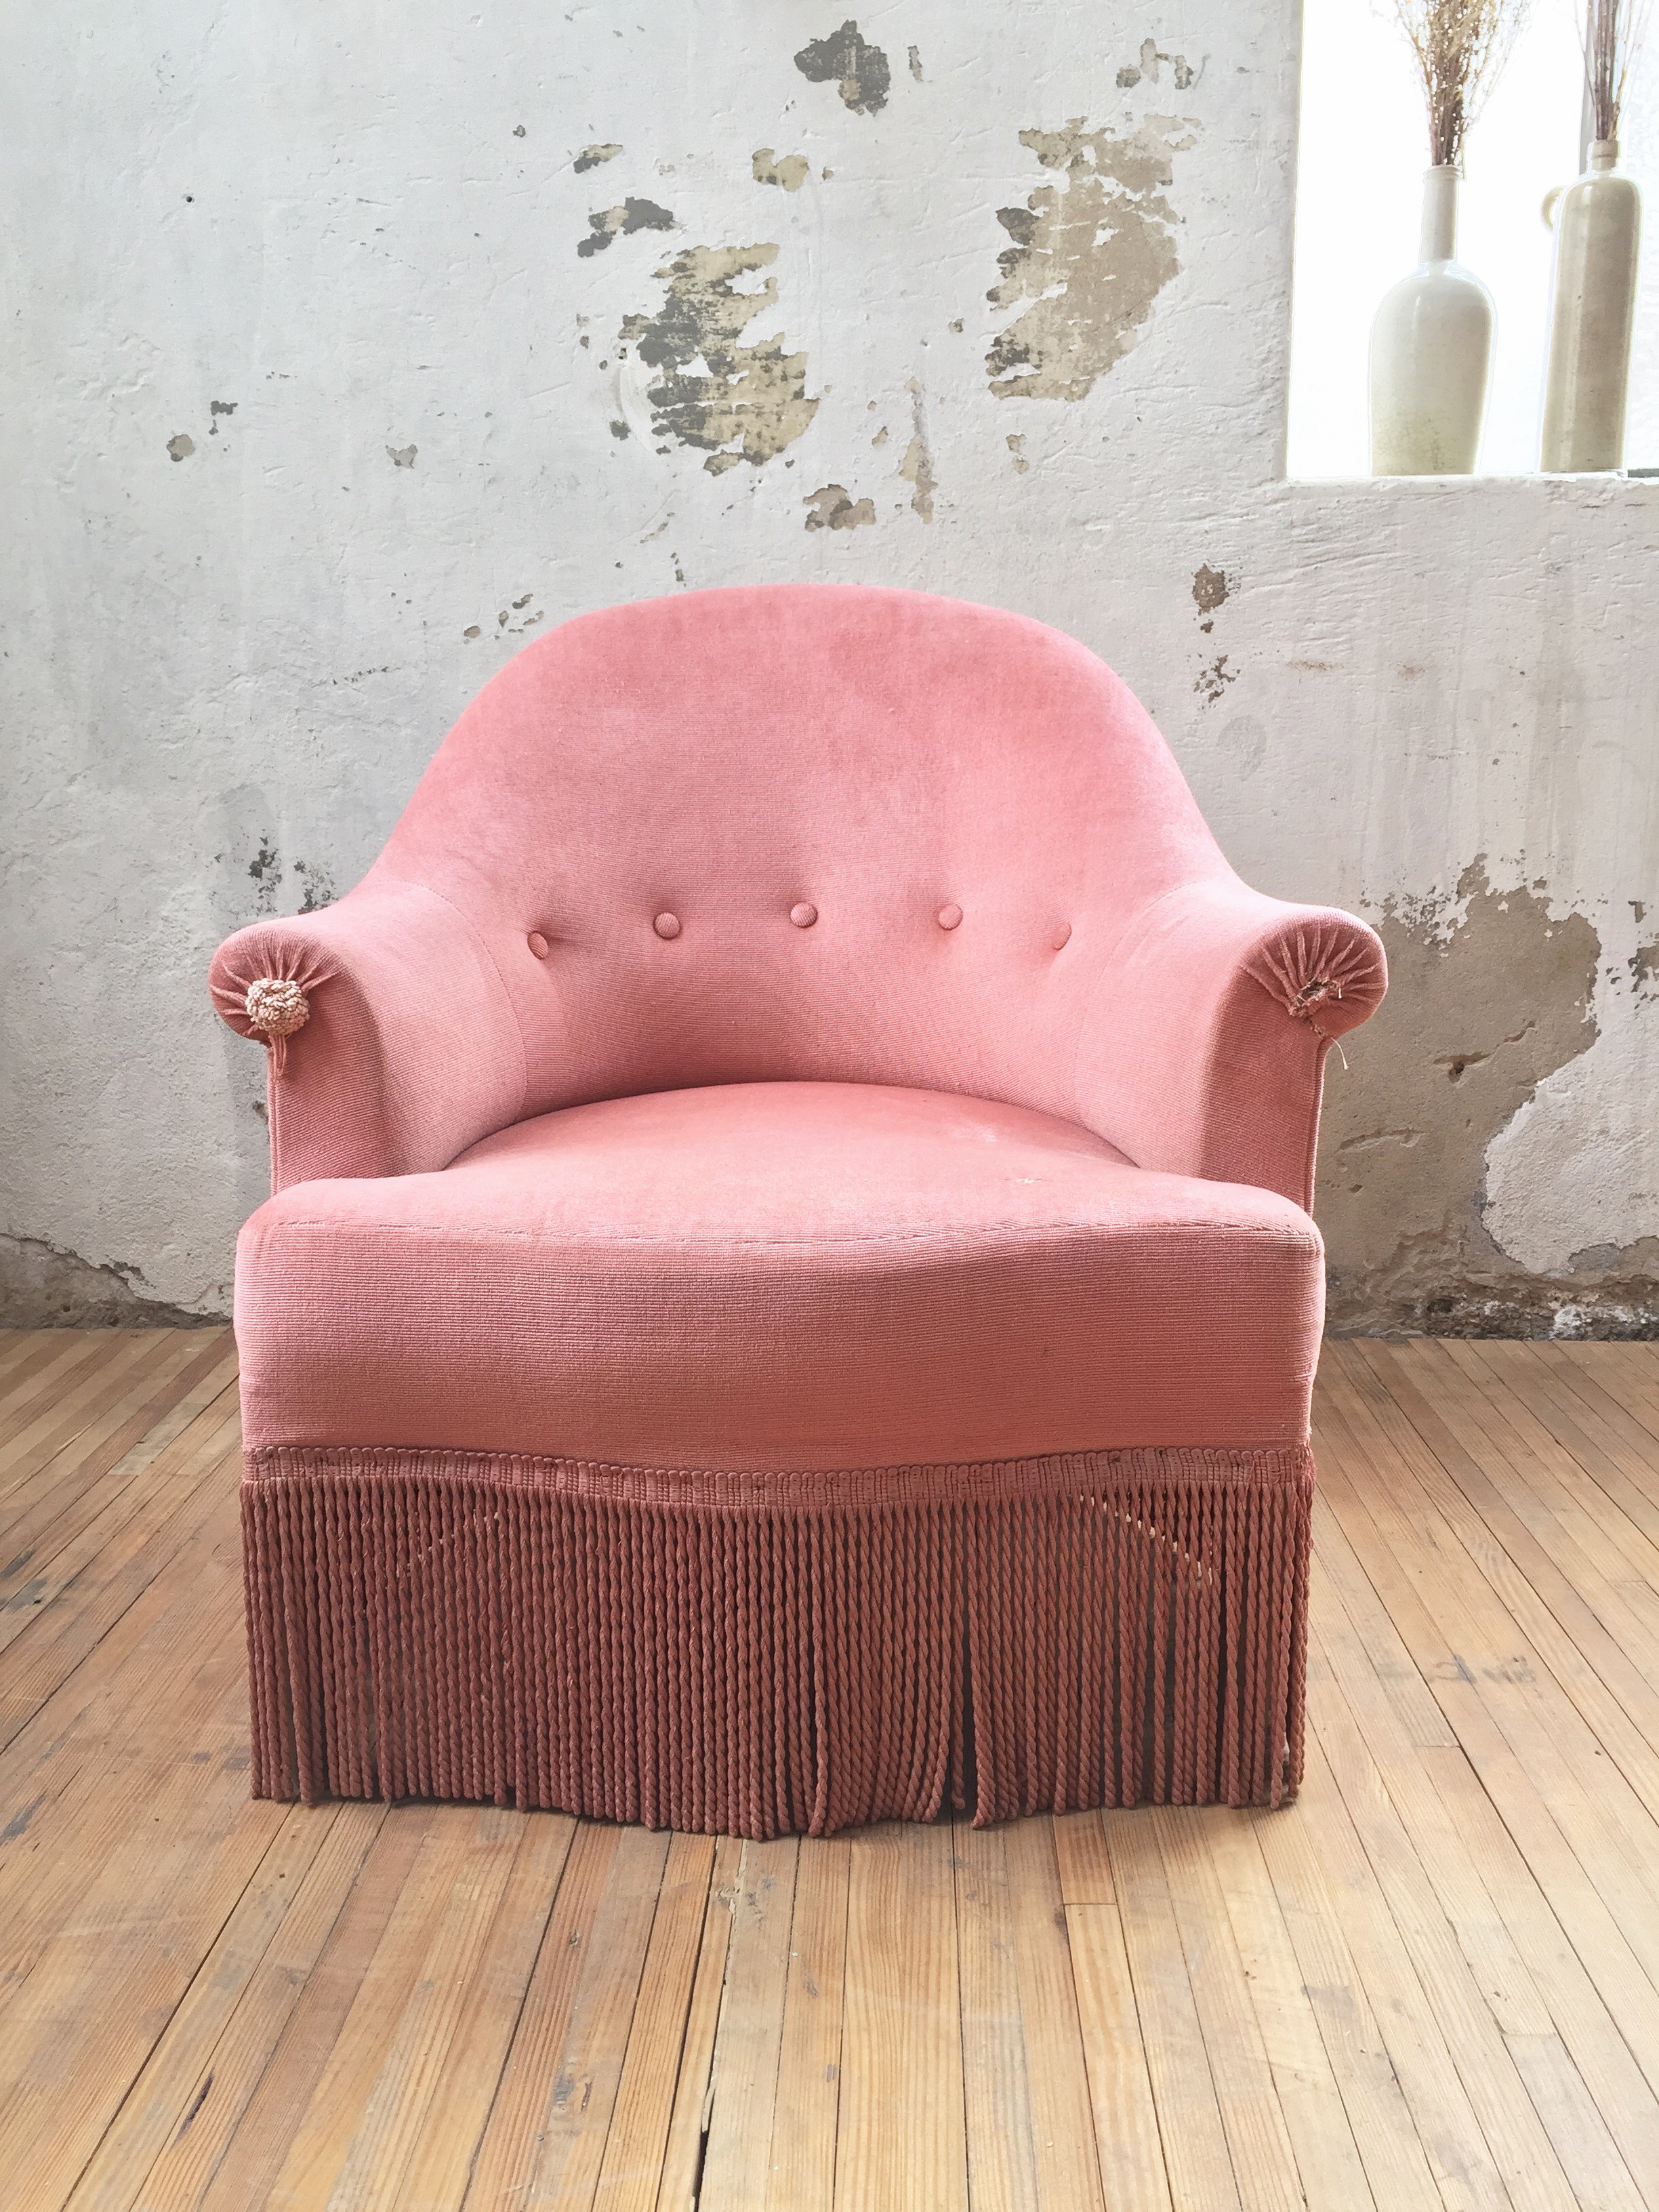 Fauteuils Crapaud Rose Fauteuil Crapaud Rose Mein Lieber